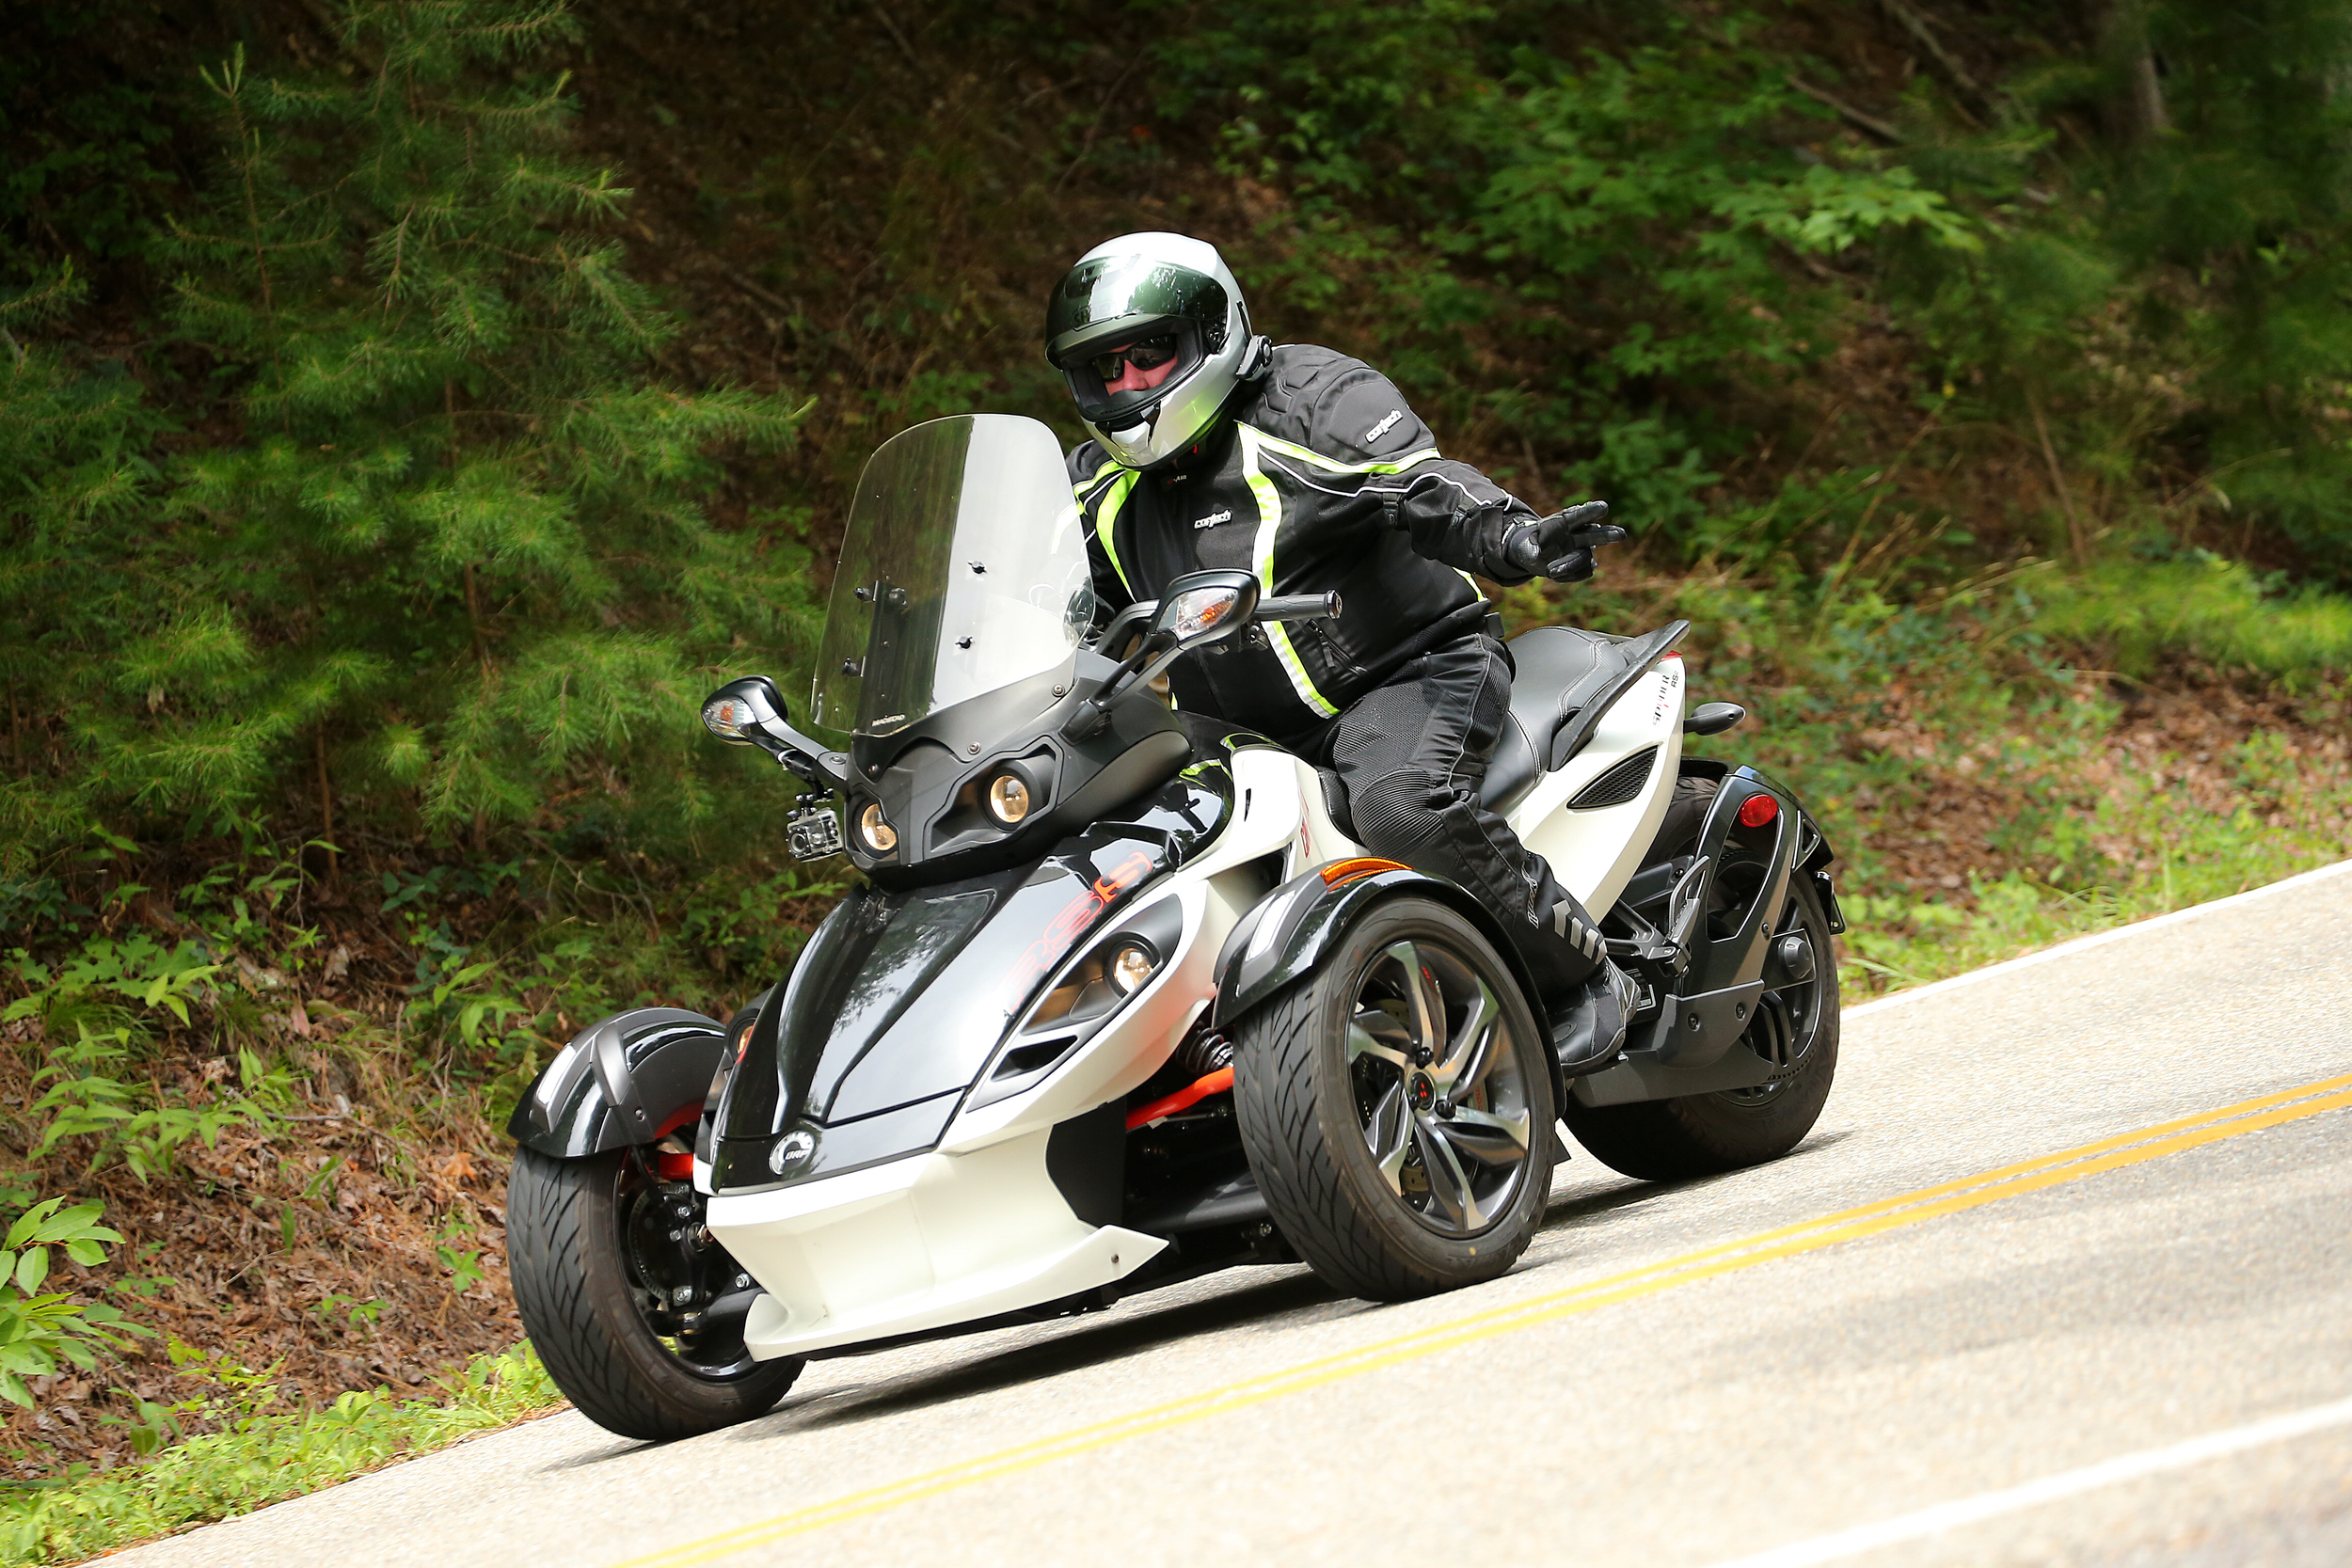 Jon getting it done on the Tail of the Dragon!